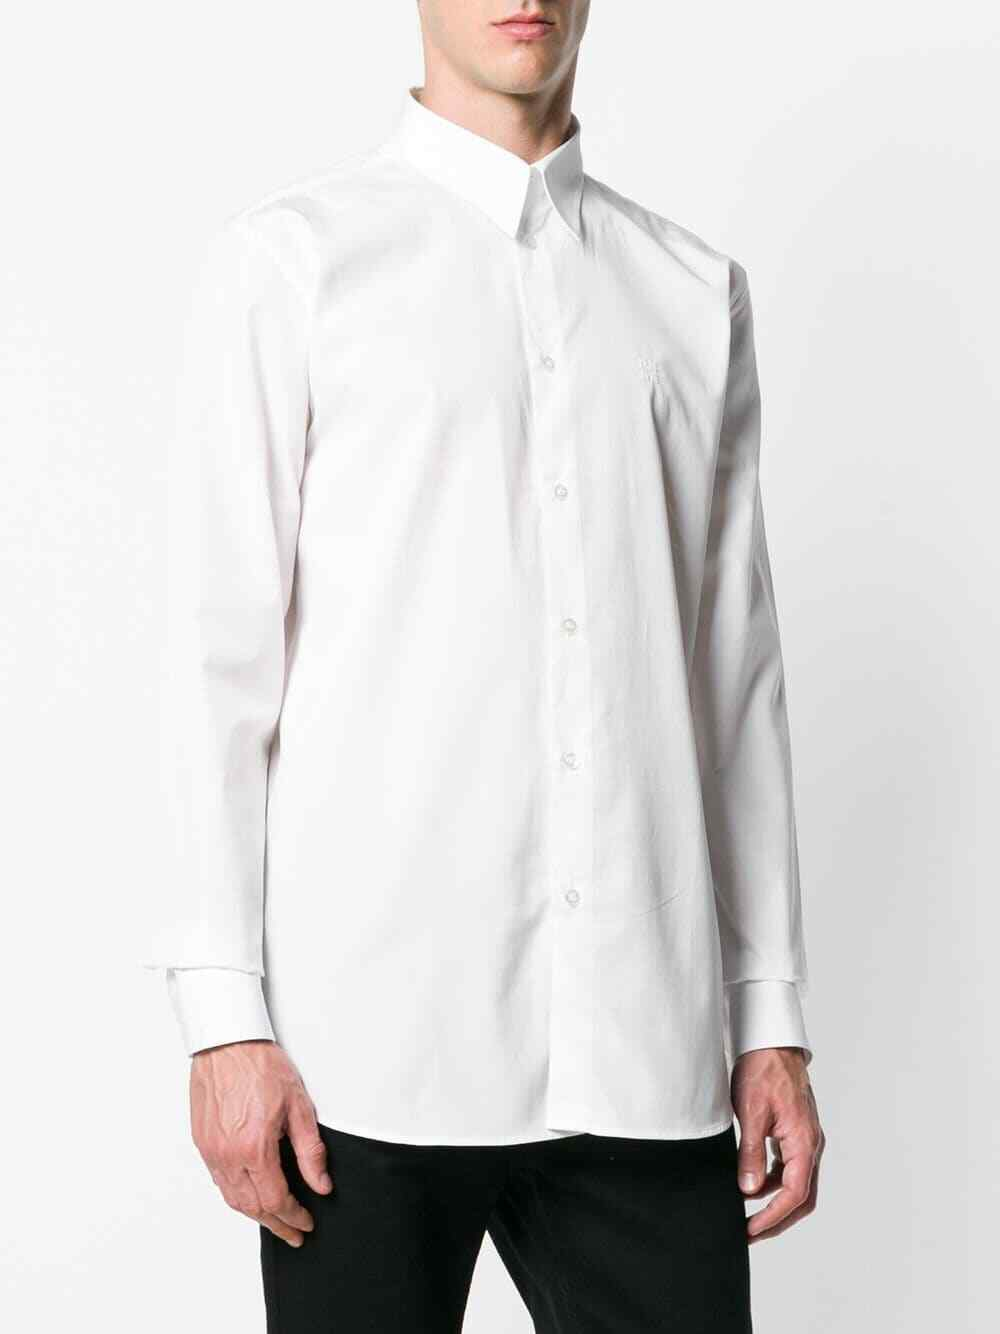 Authentic Givenchy Classic White Shirt Size 44 17½ XL XXL